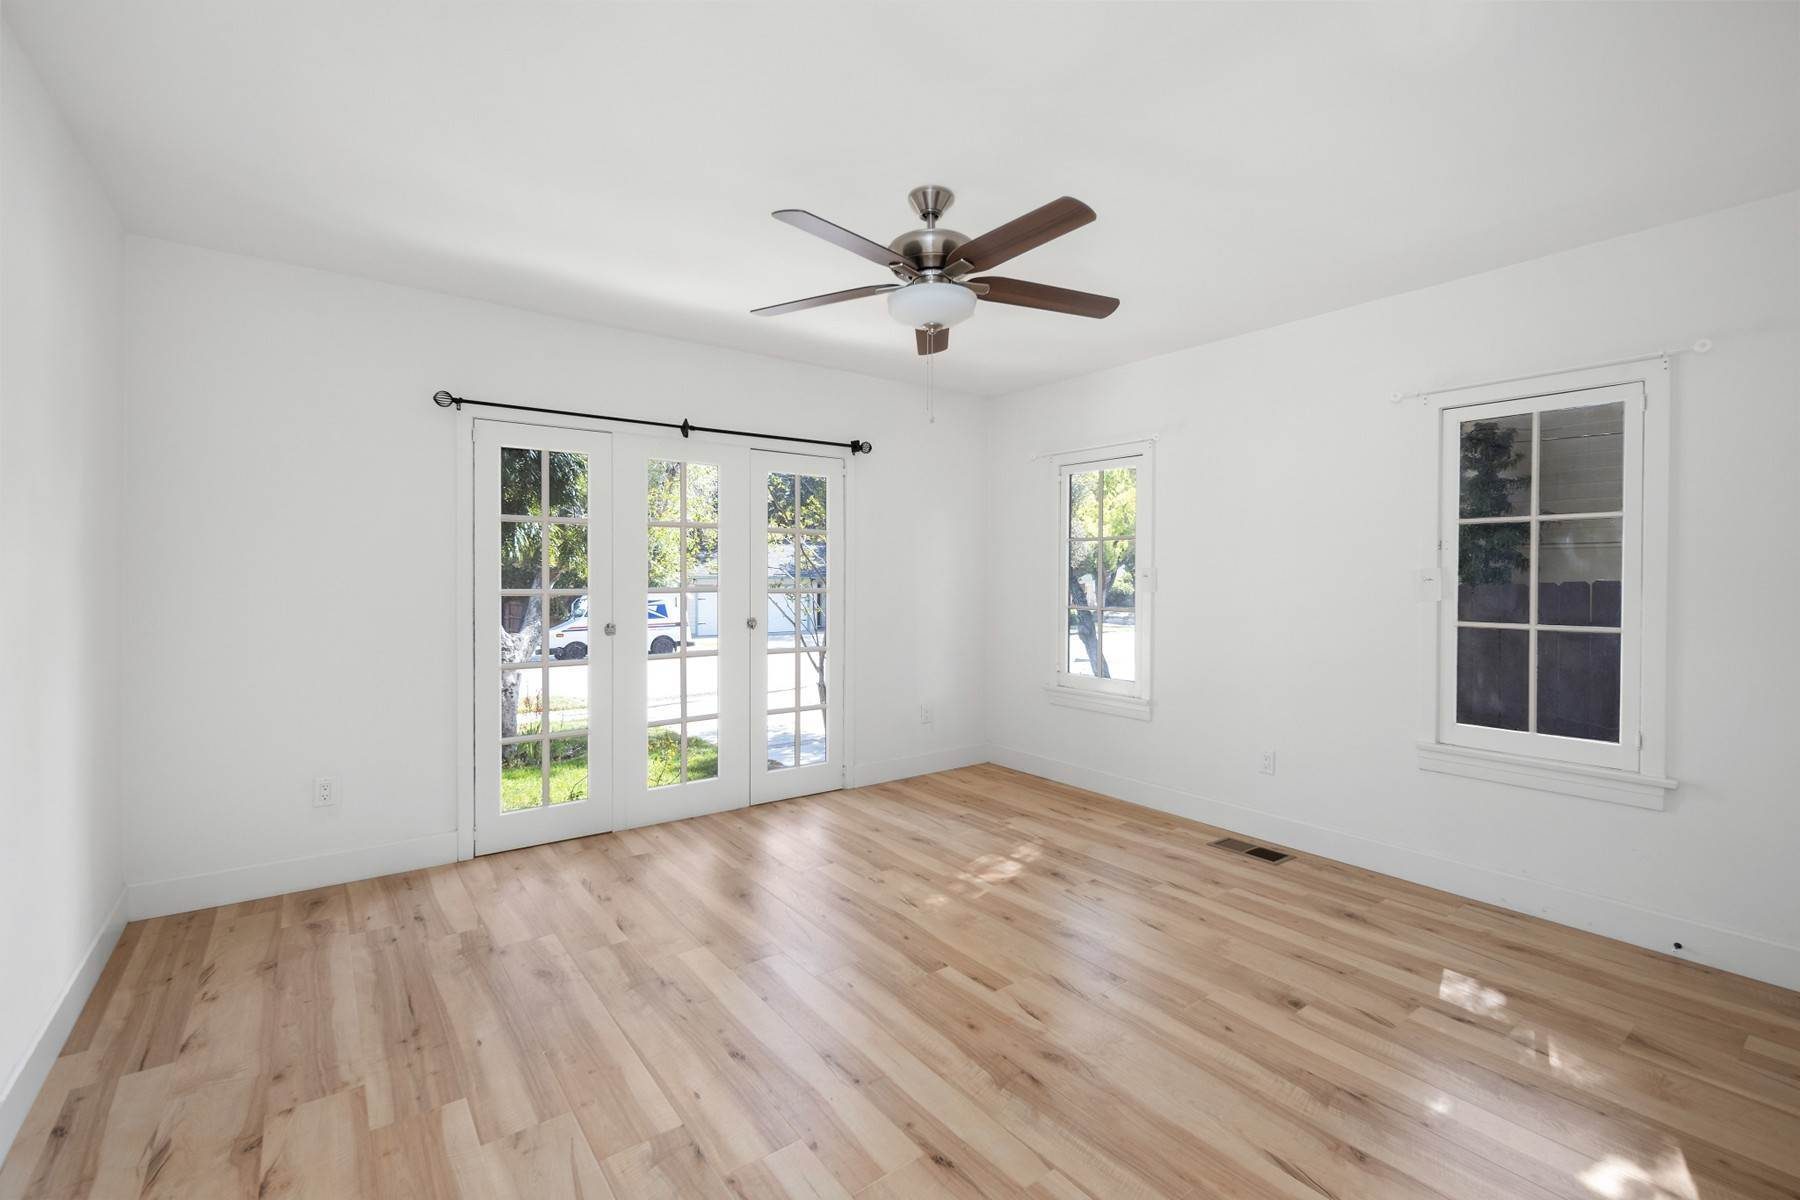 14. Single Family Homes for Sale at 137 W 8th Street, Claremont, CA 91711 137 W 8th Street Claremont, California 91711 United States